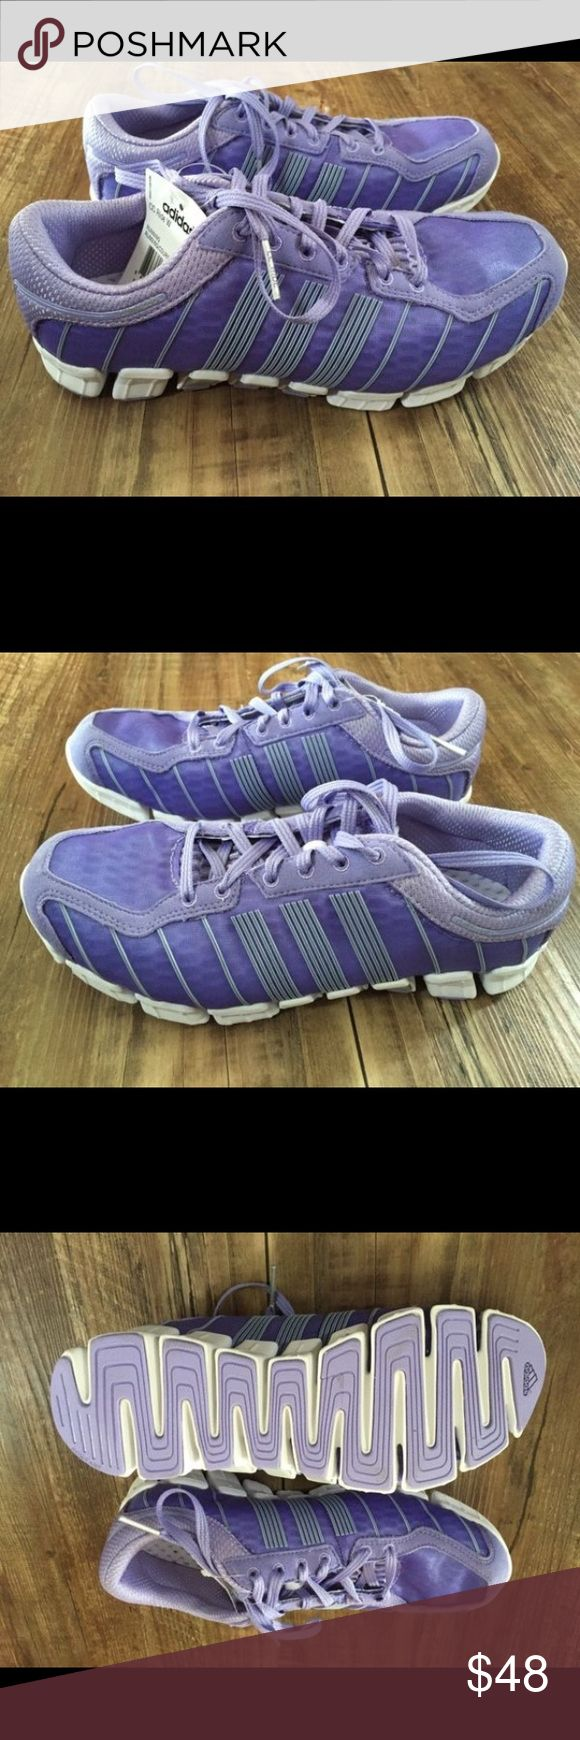 """Brand New Adidas Running Shoes Adidas Climacool Running Shoes, these are brand new with tags!    Features: •Climacool •Rubber sole •Minimalist upper lets air flow from all angles •SoftTech outsole and flexible midsole for comfort, and visual seaming that screams """"fast"""". Adidas Shoes Athletic Shoes"""